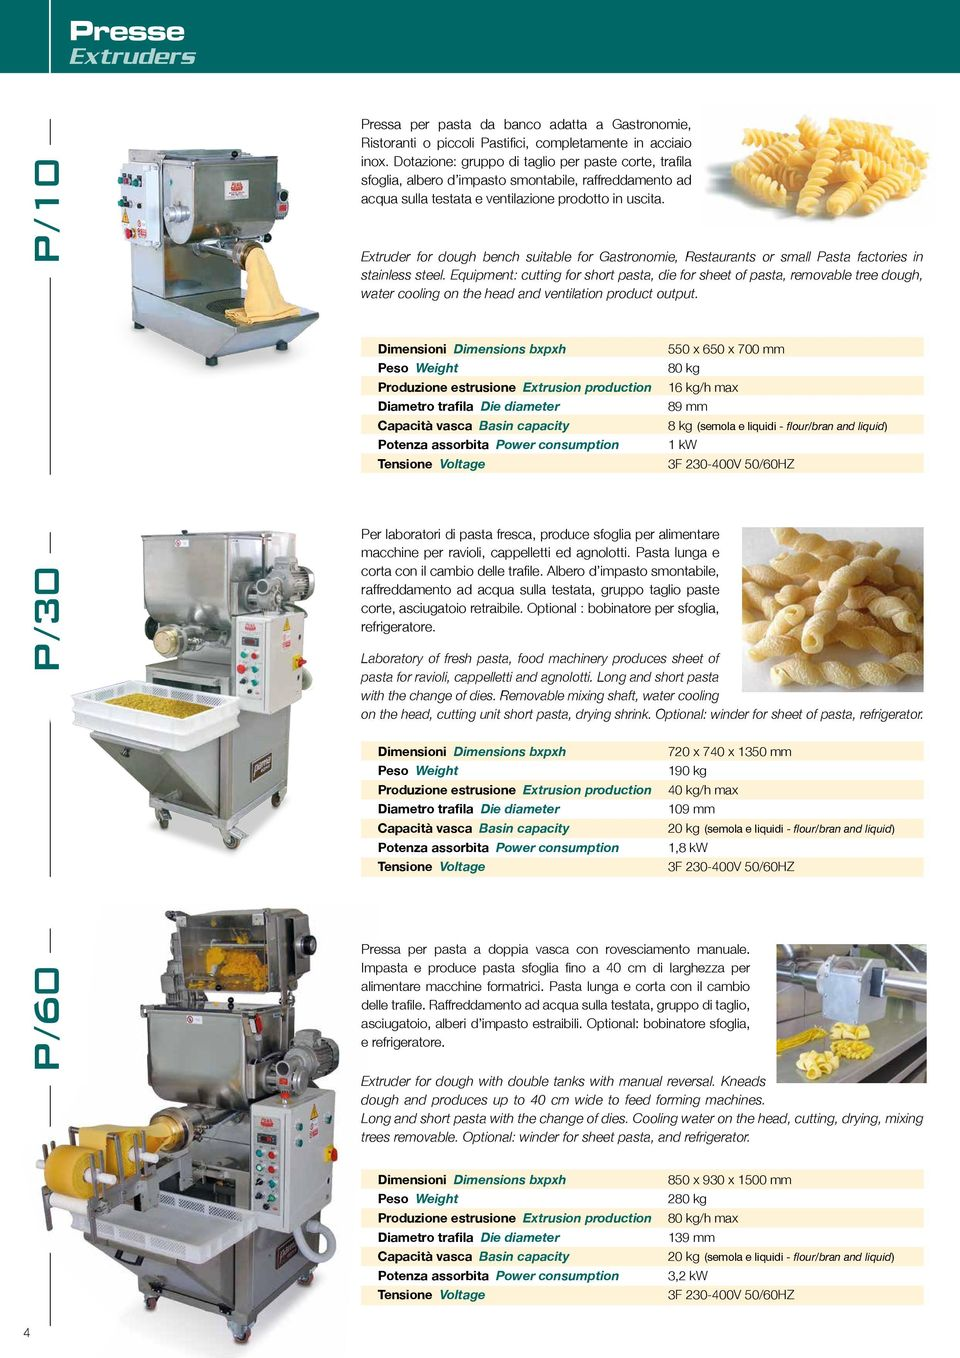 Extruder for dough bench suitable for Gastronomie, Restaurants or small Pasta factories in stainless steel.